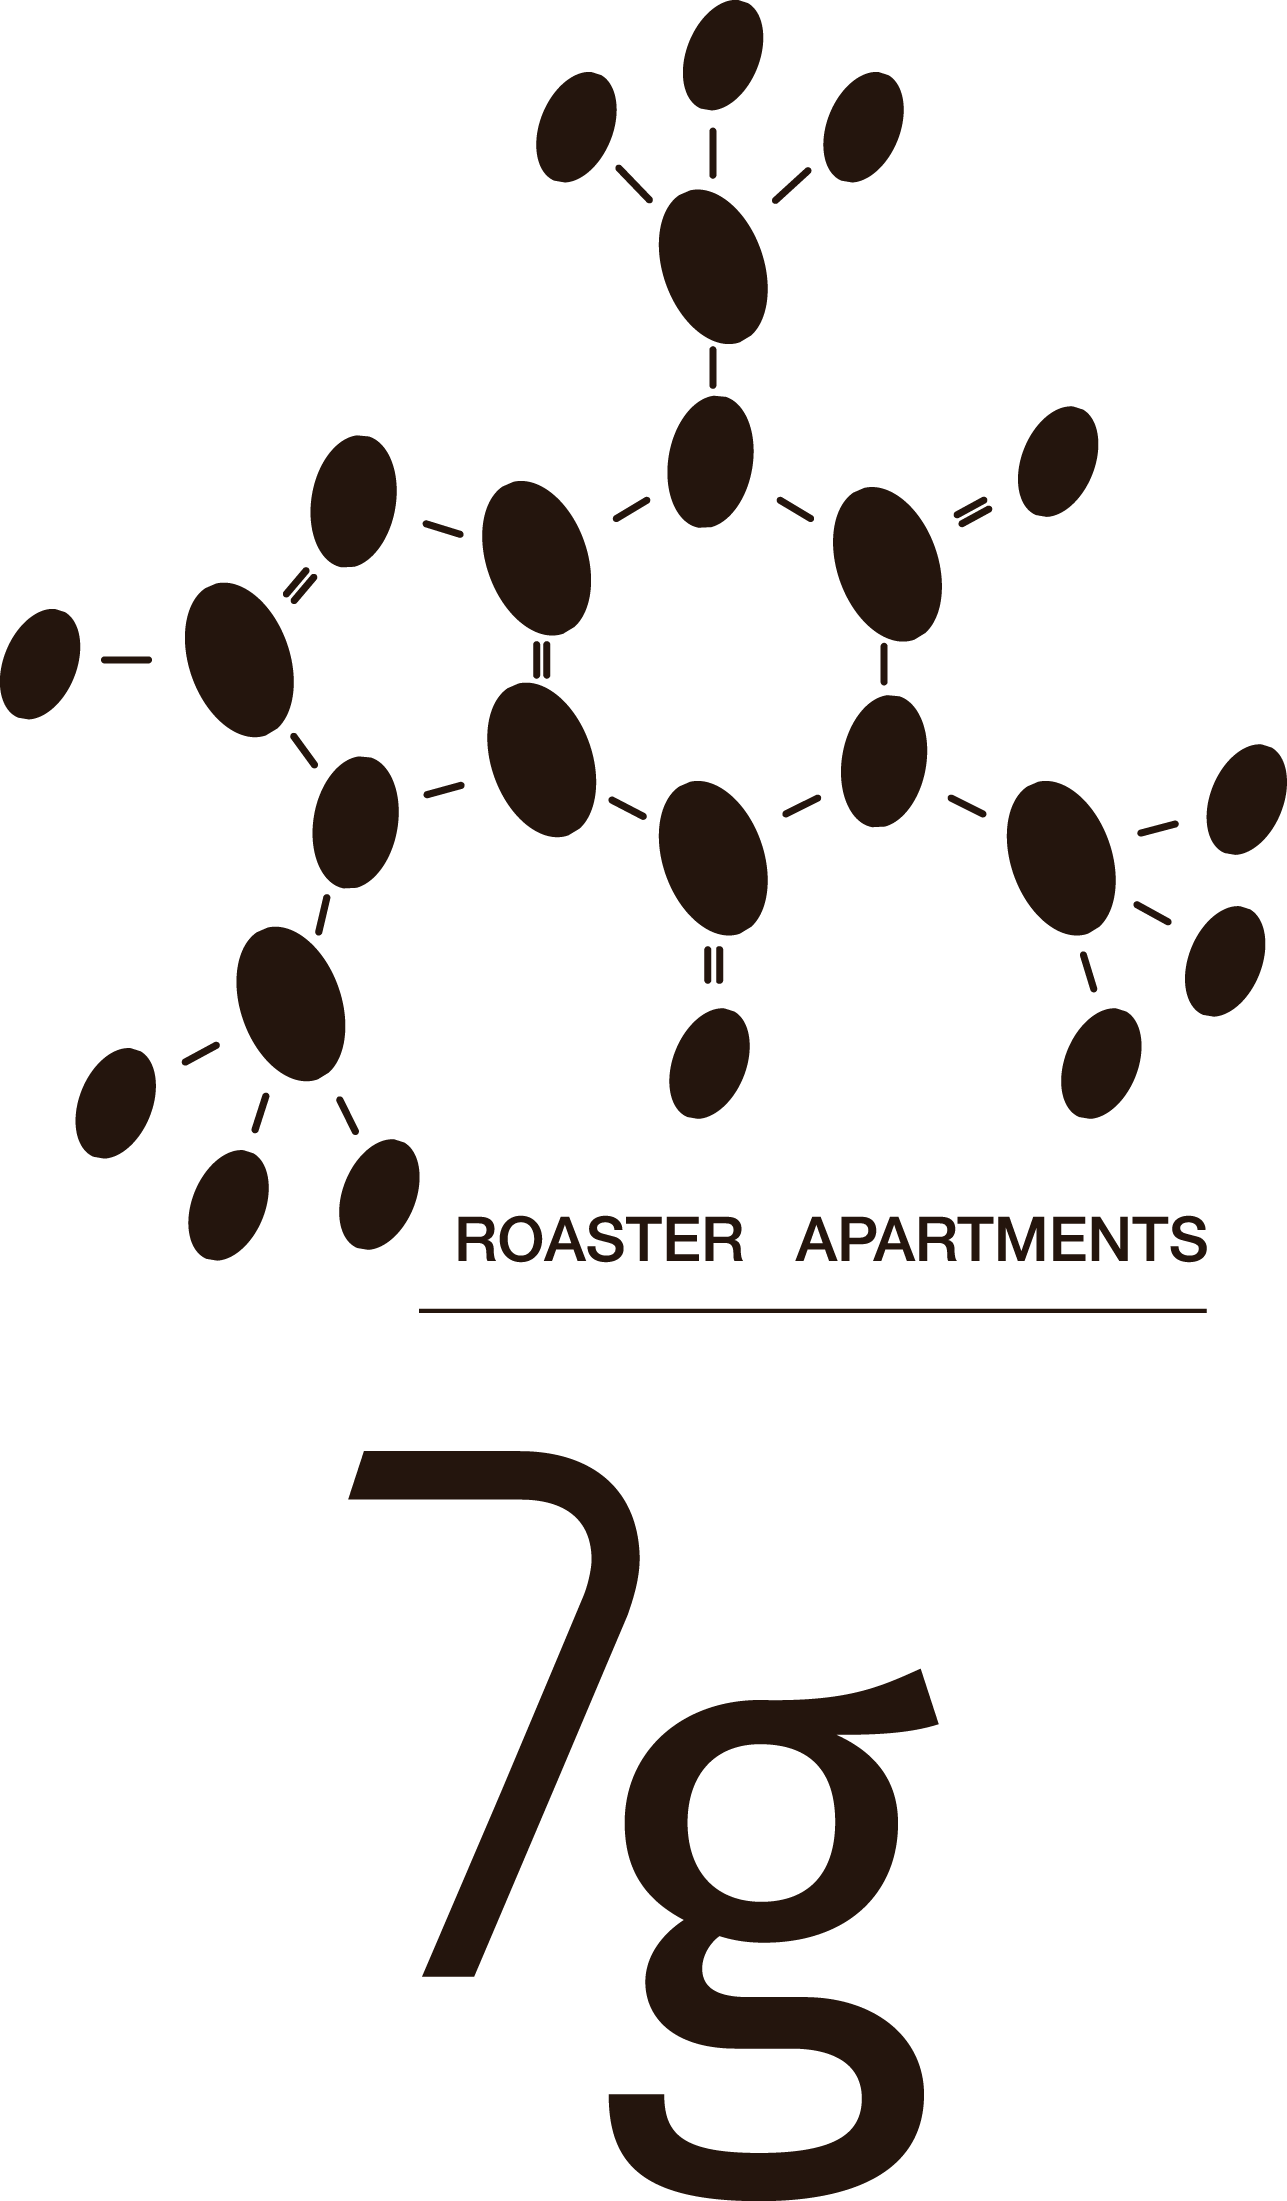 Roaster Apartments